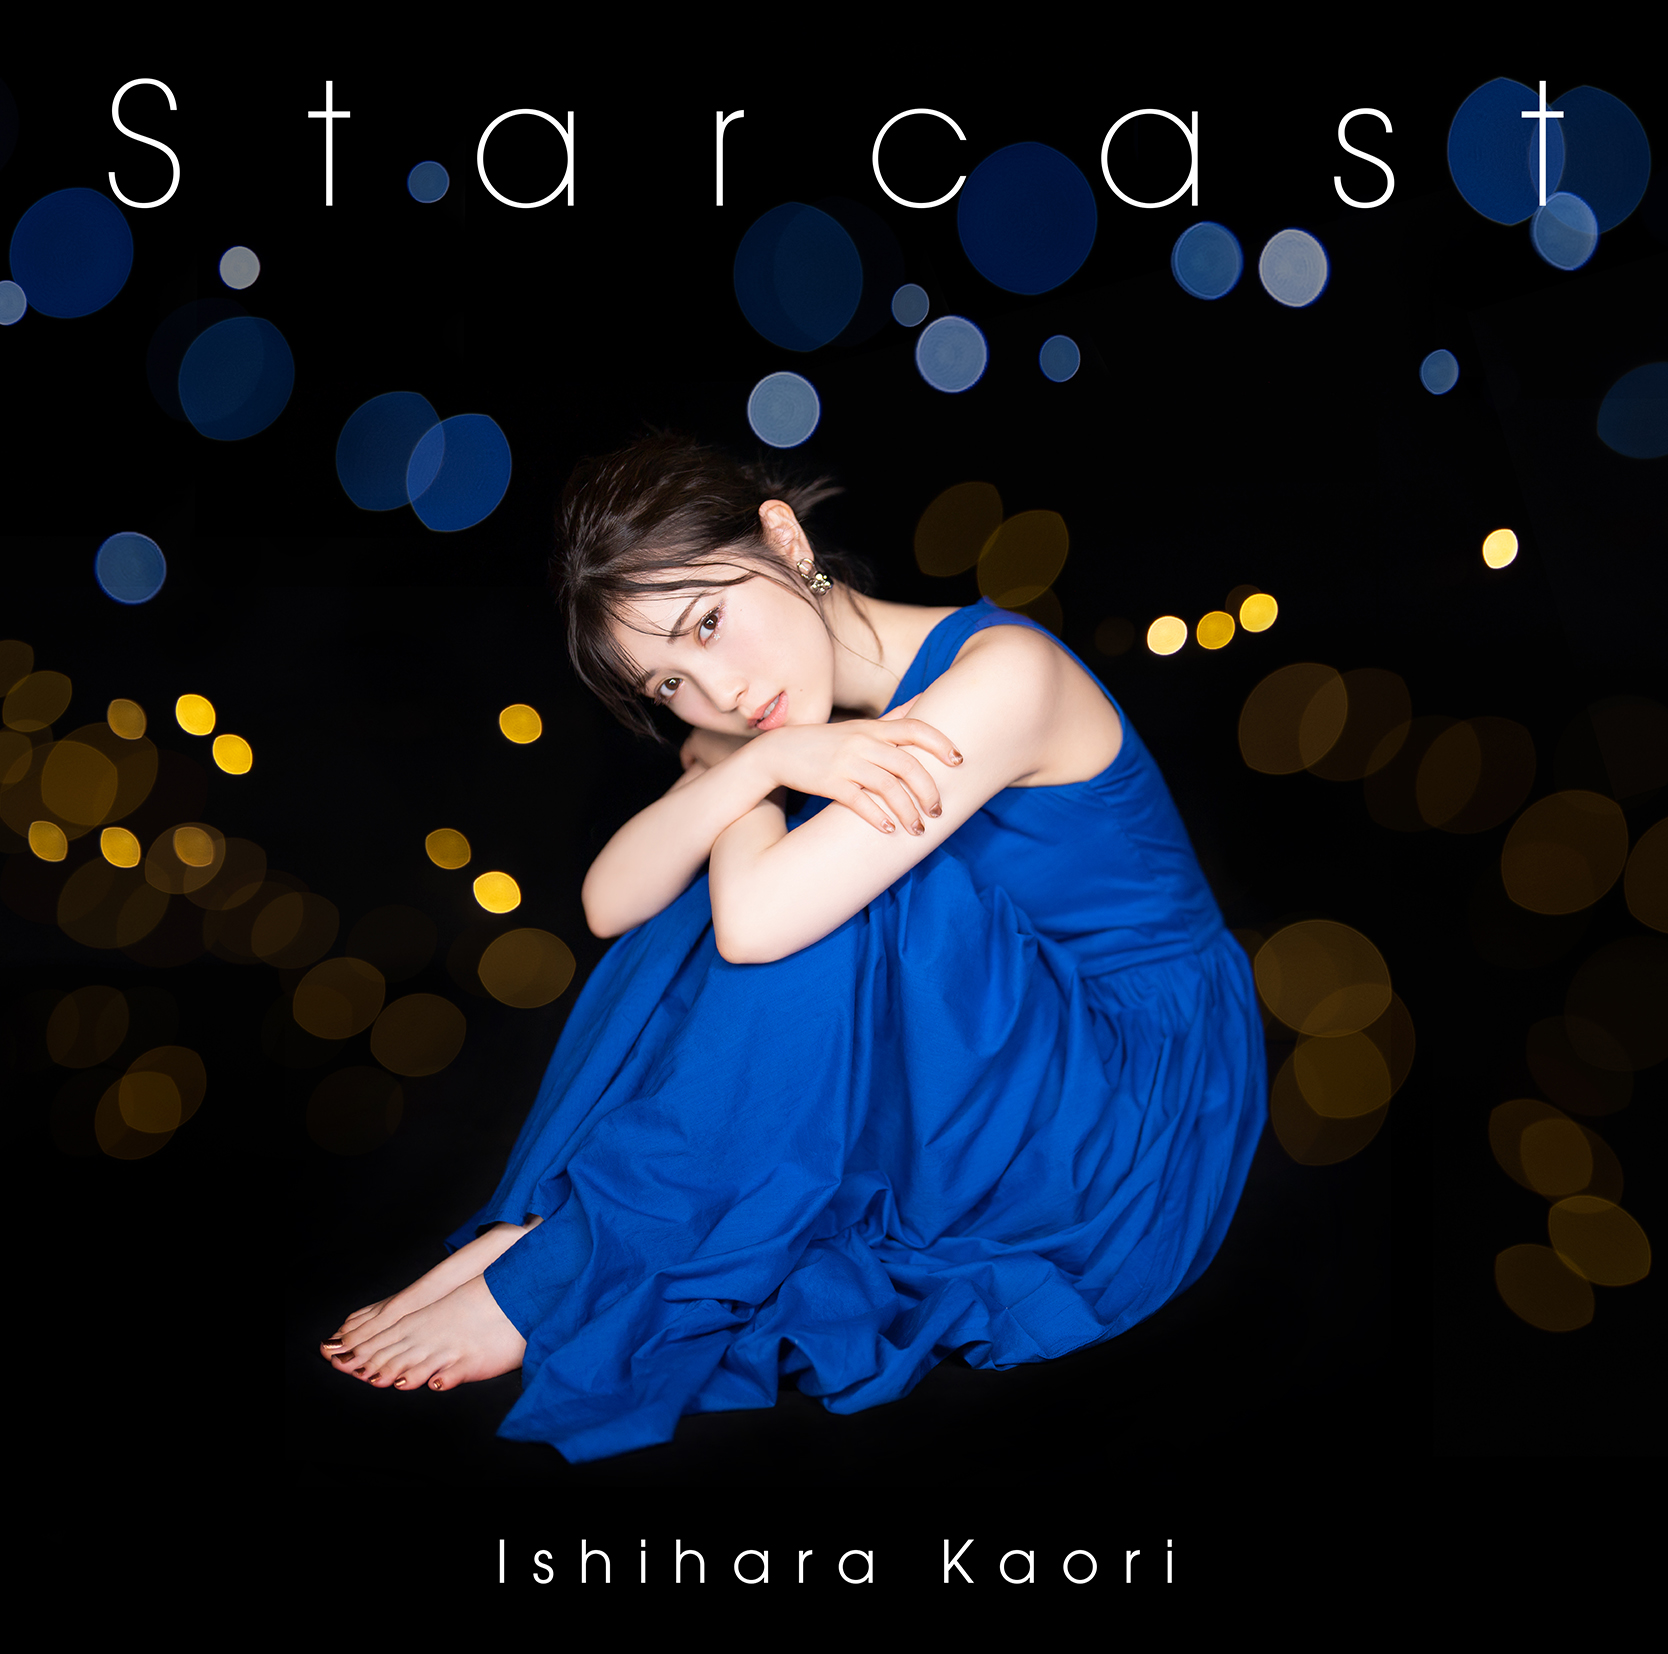 """Ishihara Kaori 7th Single """"Starcast"""" Normal Edition (CD only) Release in Nov 24th 2021 No.1"""